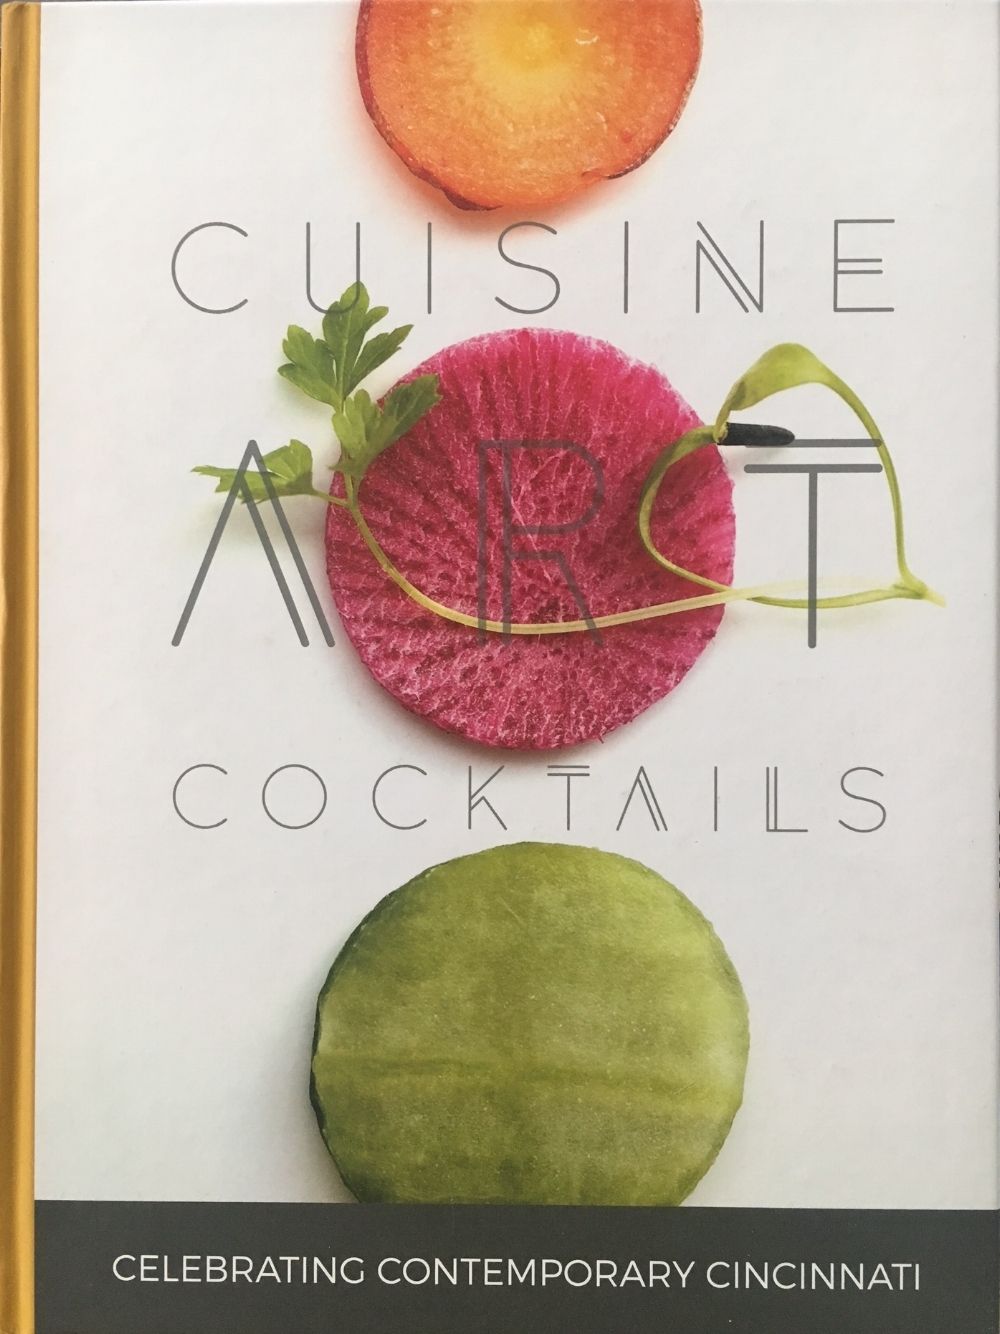 CuisineArtCocktails_Cookbook.jpg